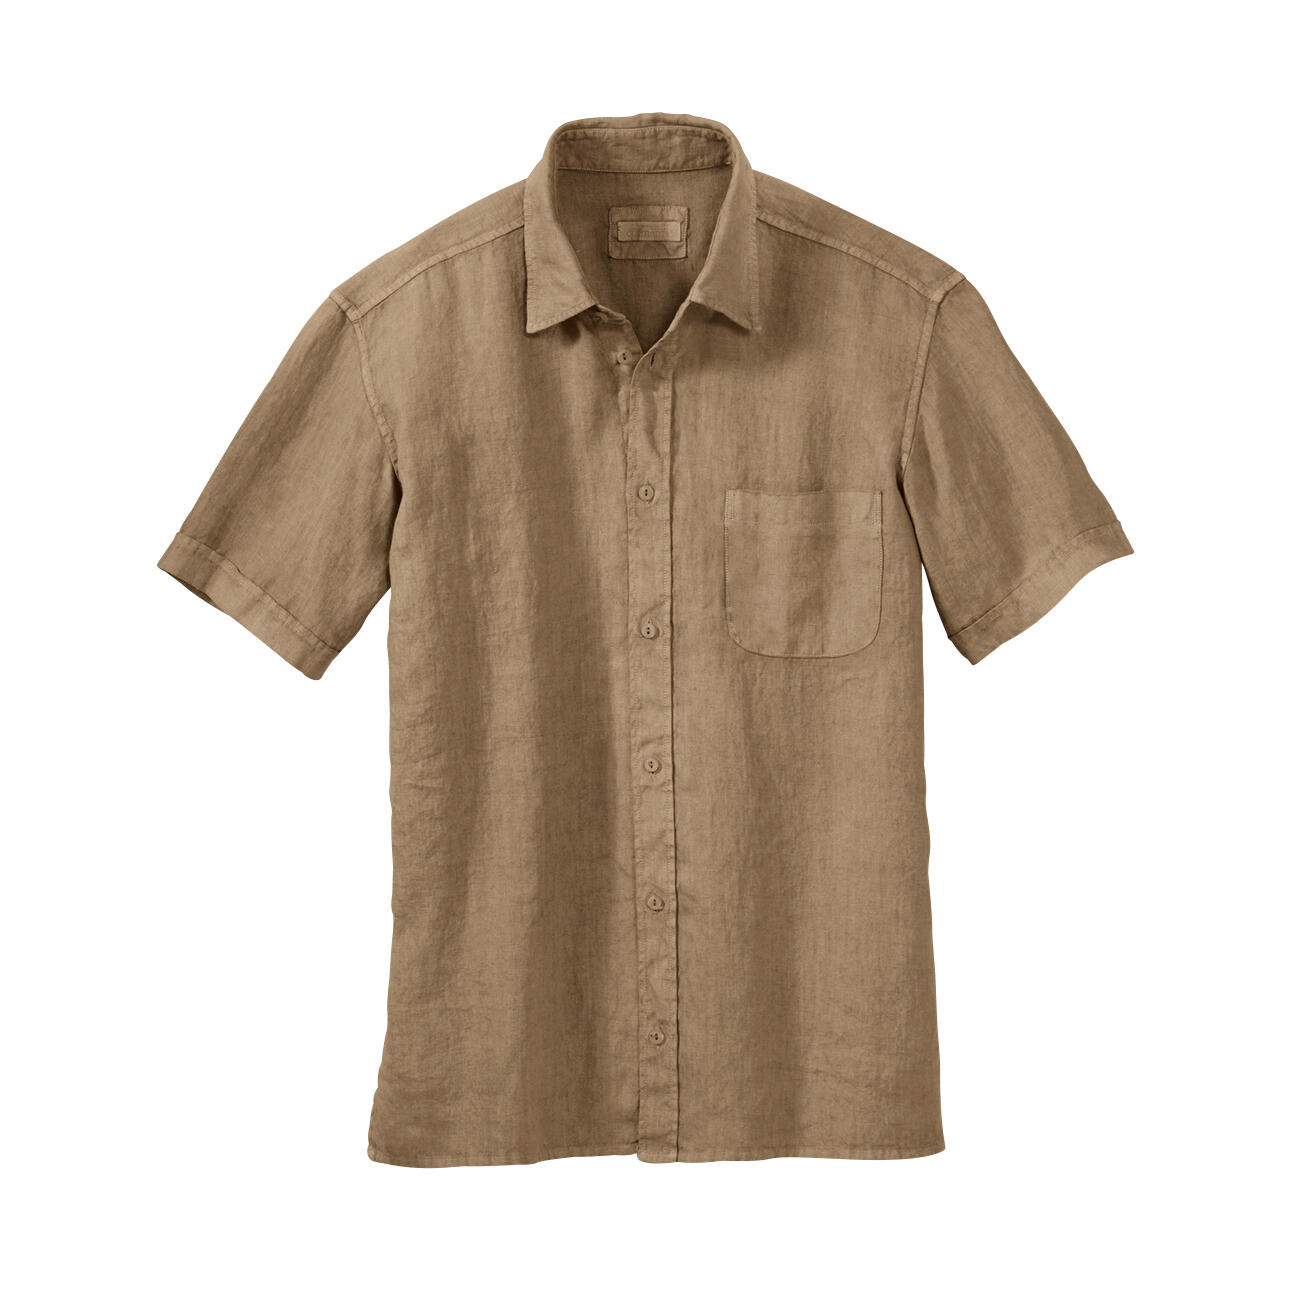 buy dorani vintage linen shirt 3 year product guarantee